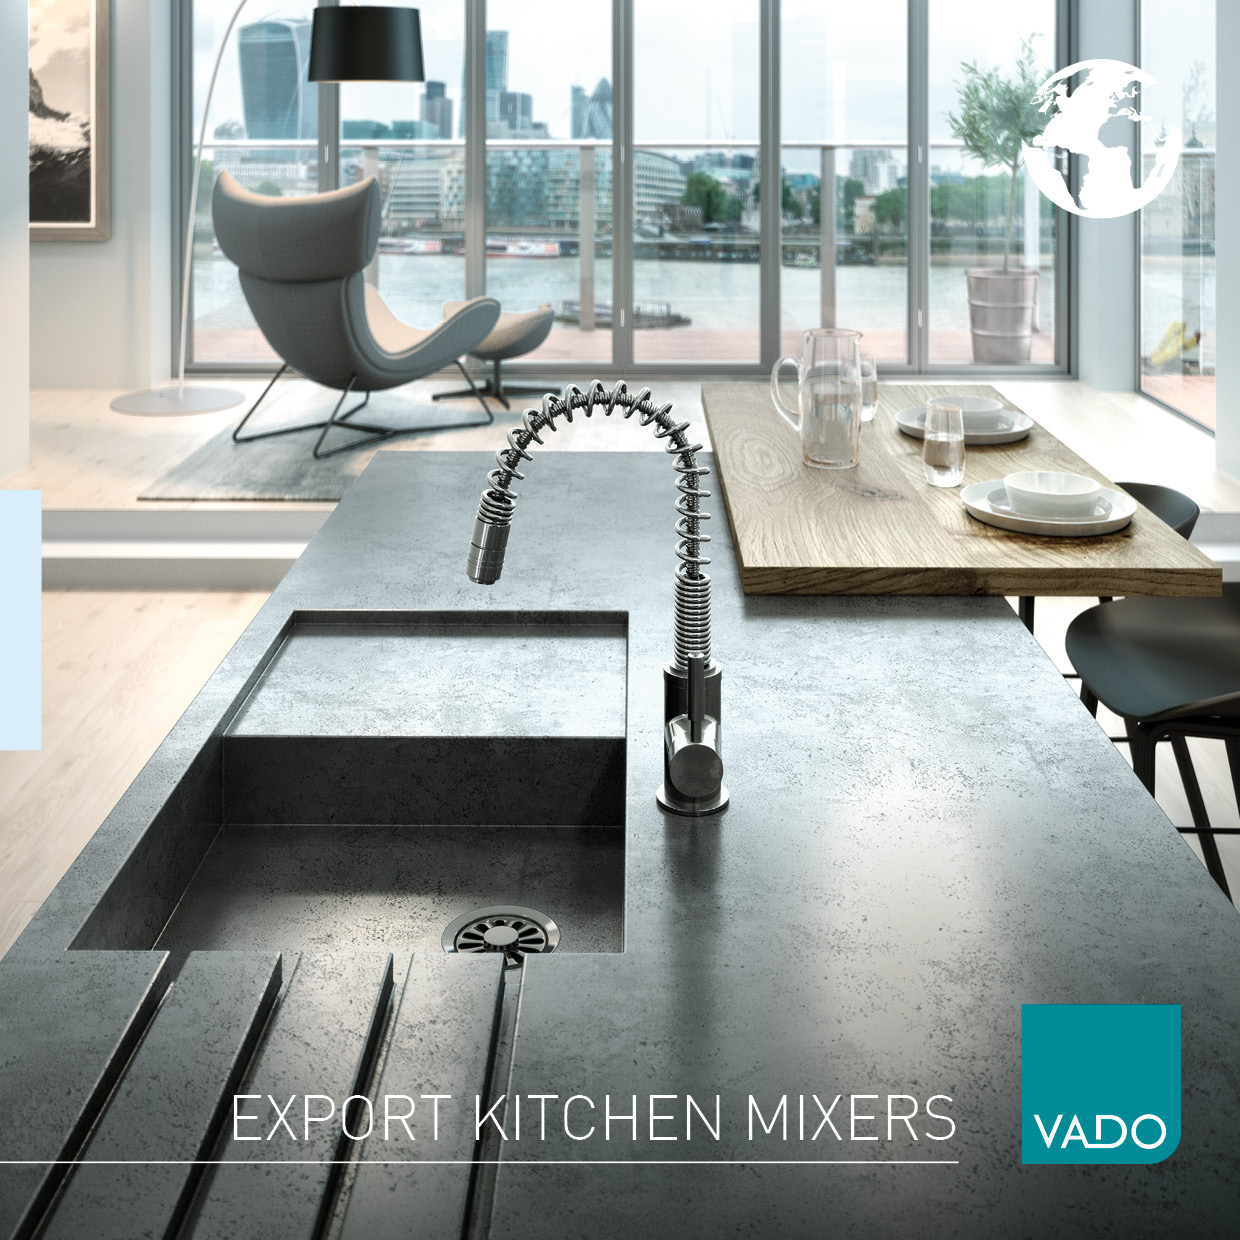 export_kitchen_mixers_thumbnail1